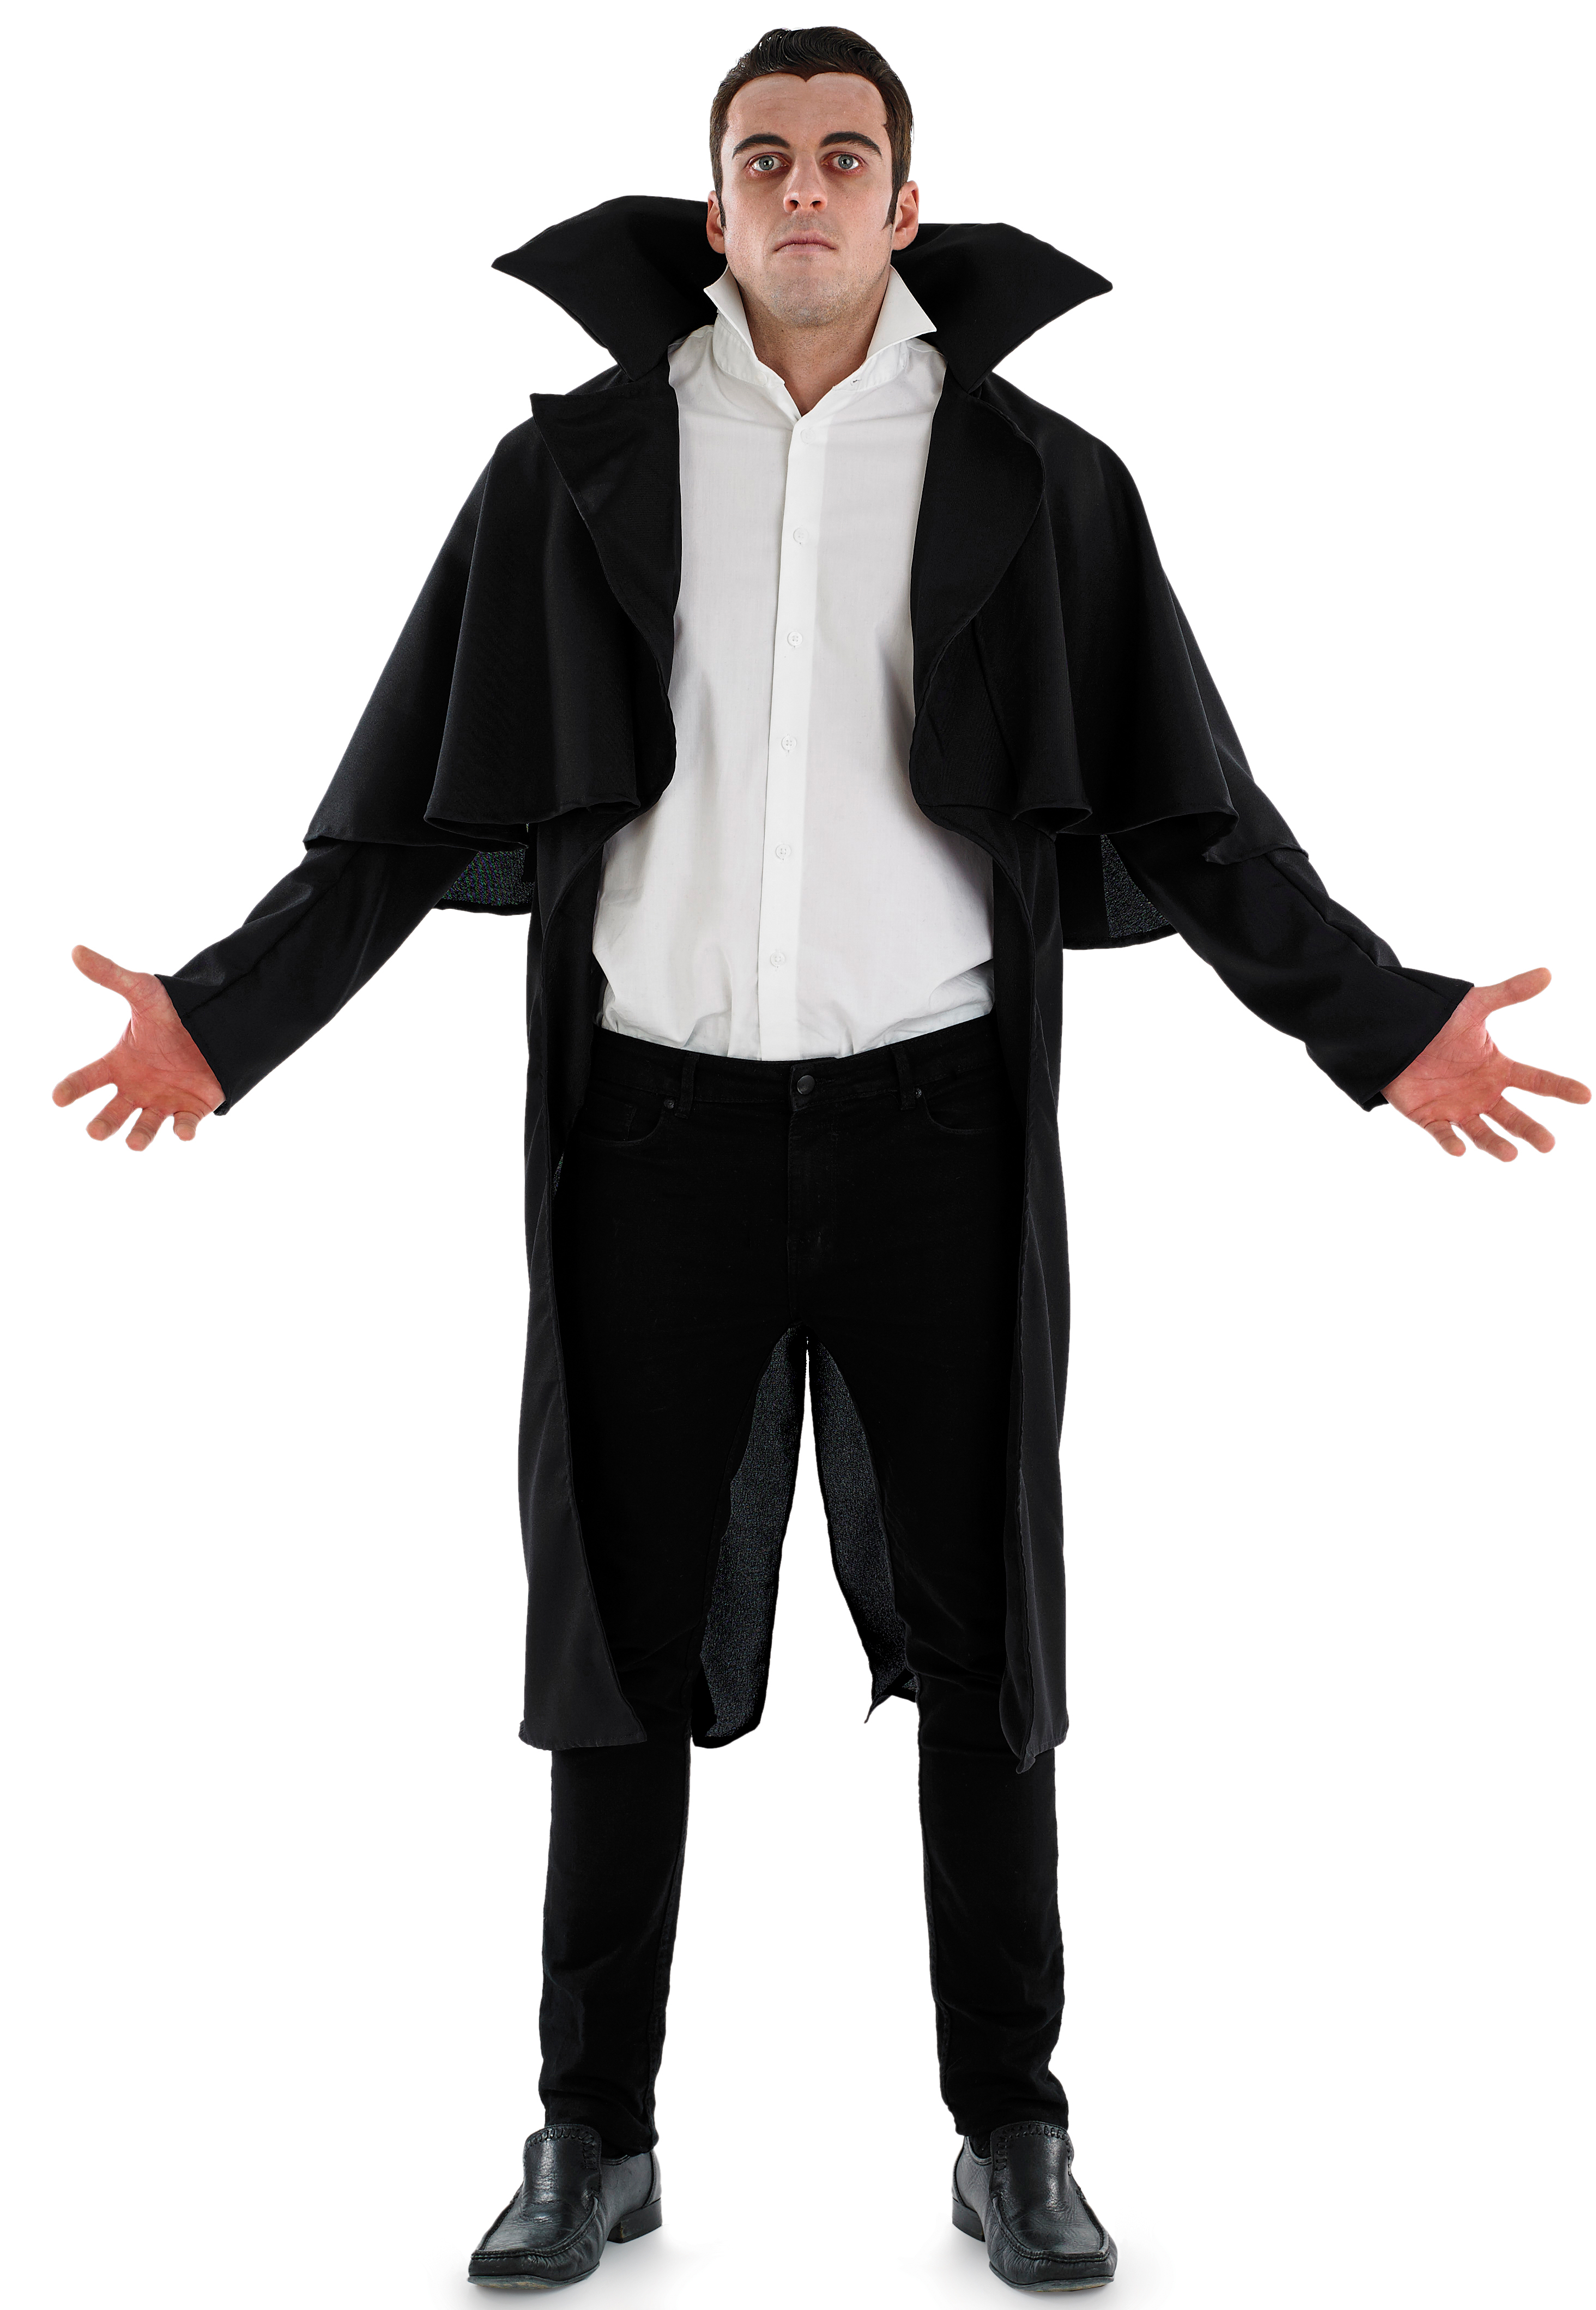 gothic vampire coat mens fancy dress halloween dracula adults costume accessory - Halloween Dracula Costumes